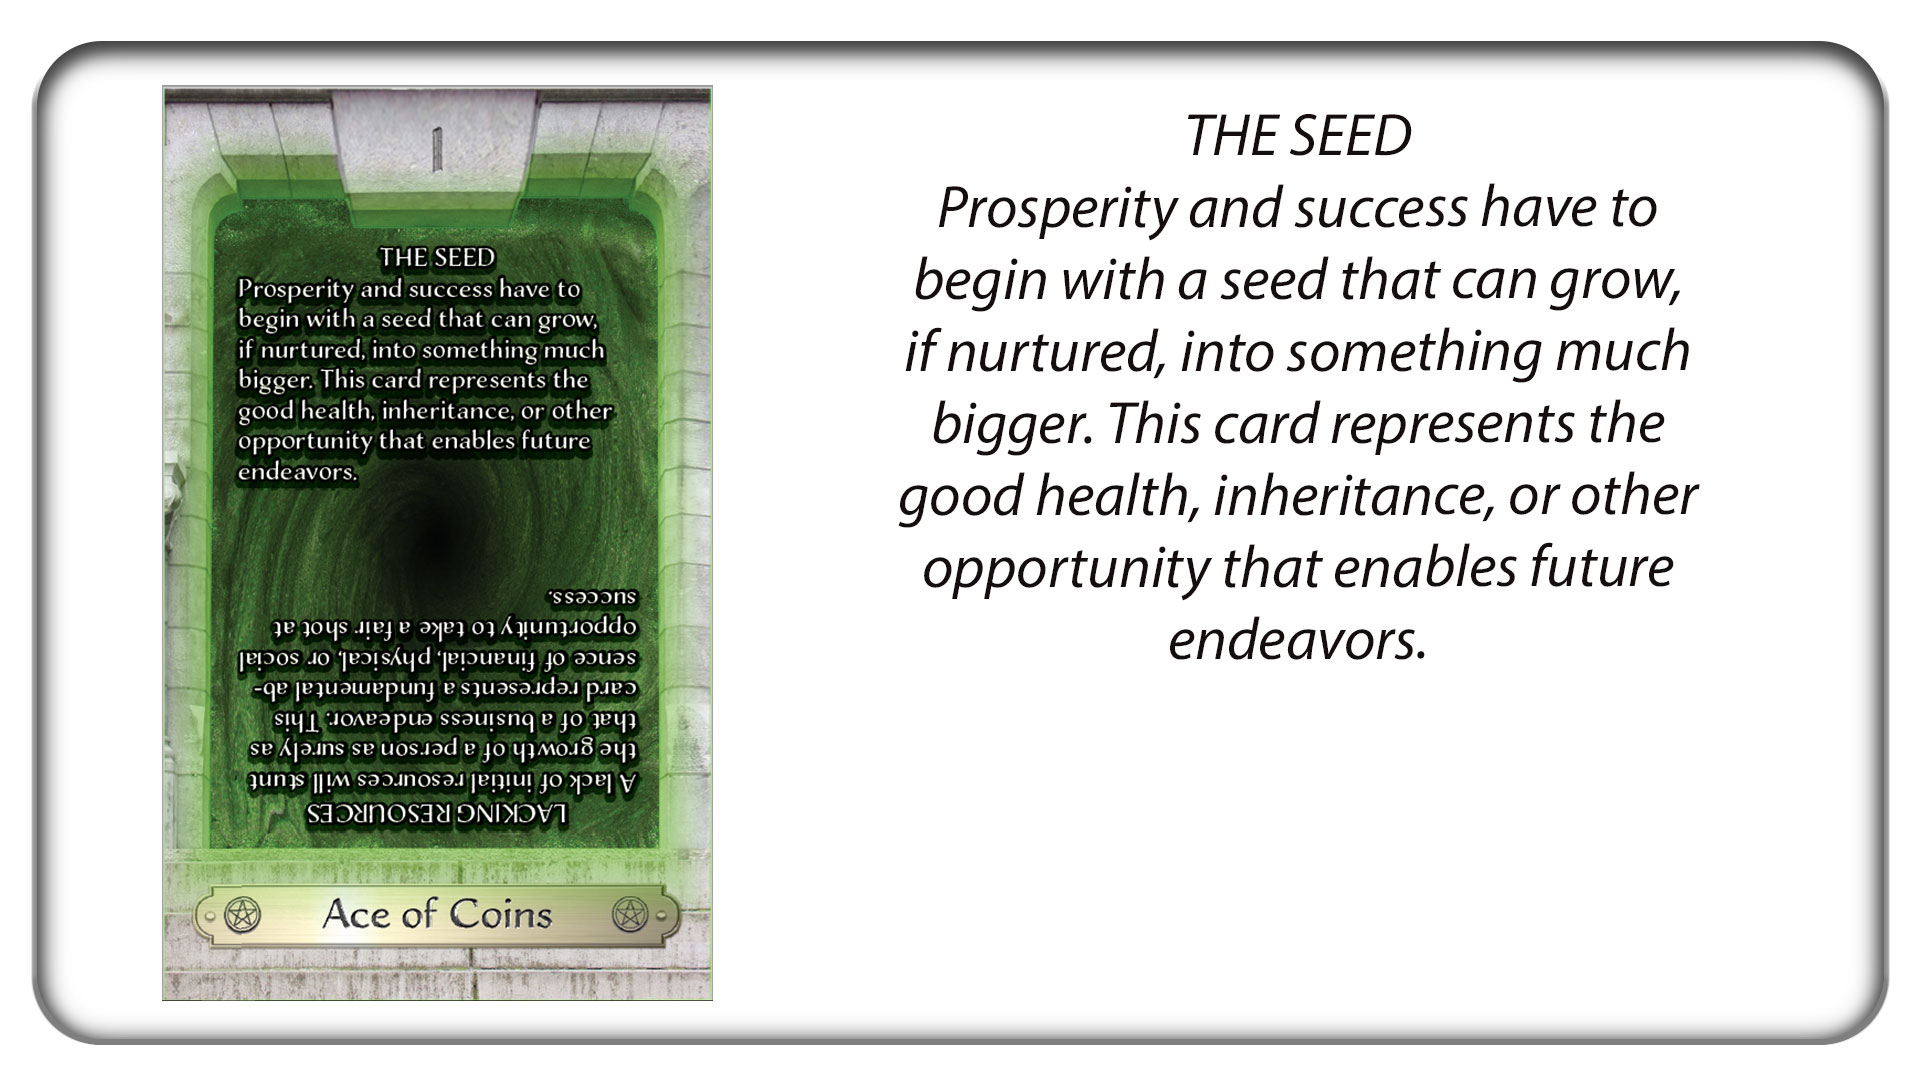 The Ace of Coins: The Seed